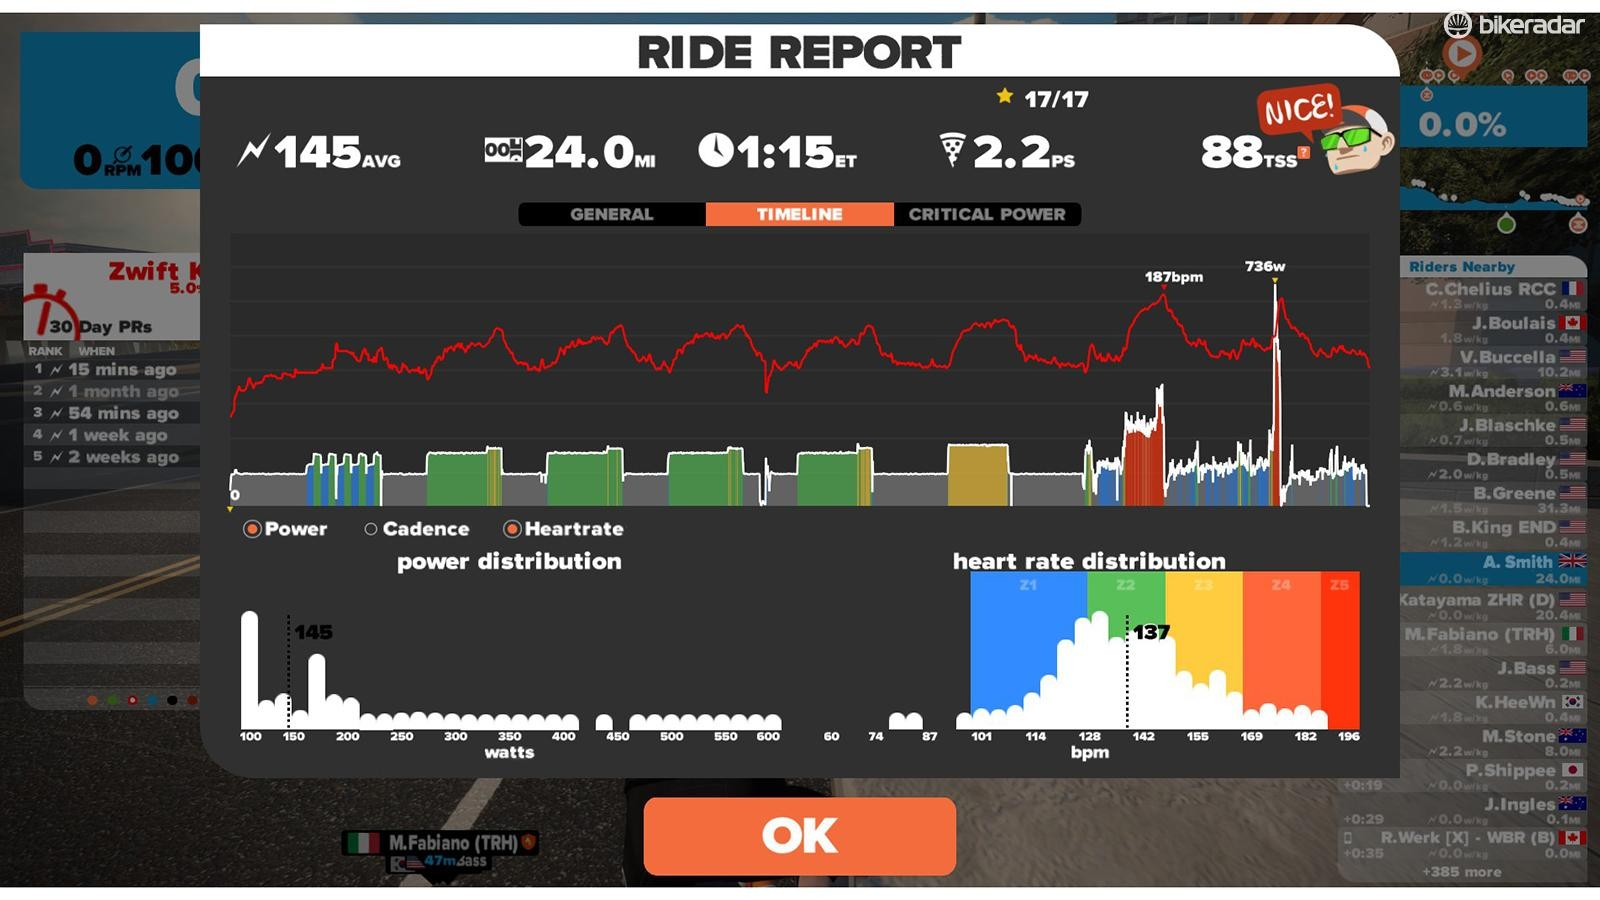 View a report on your ride